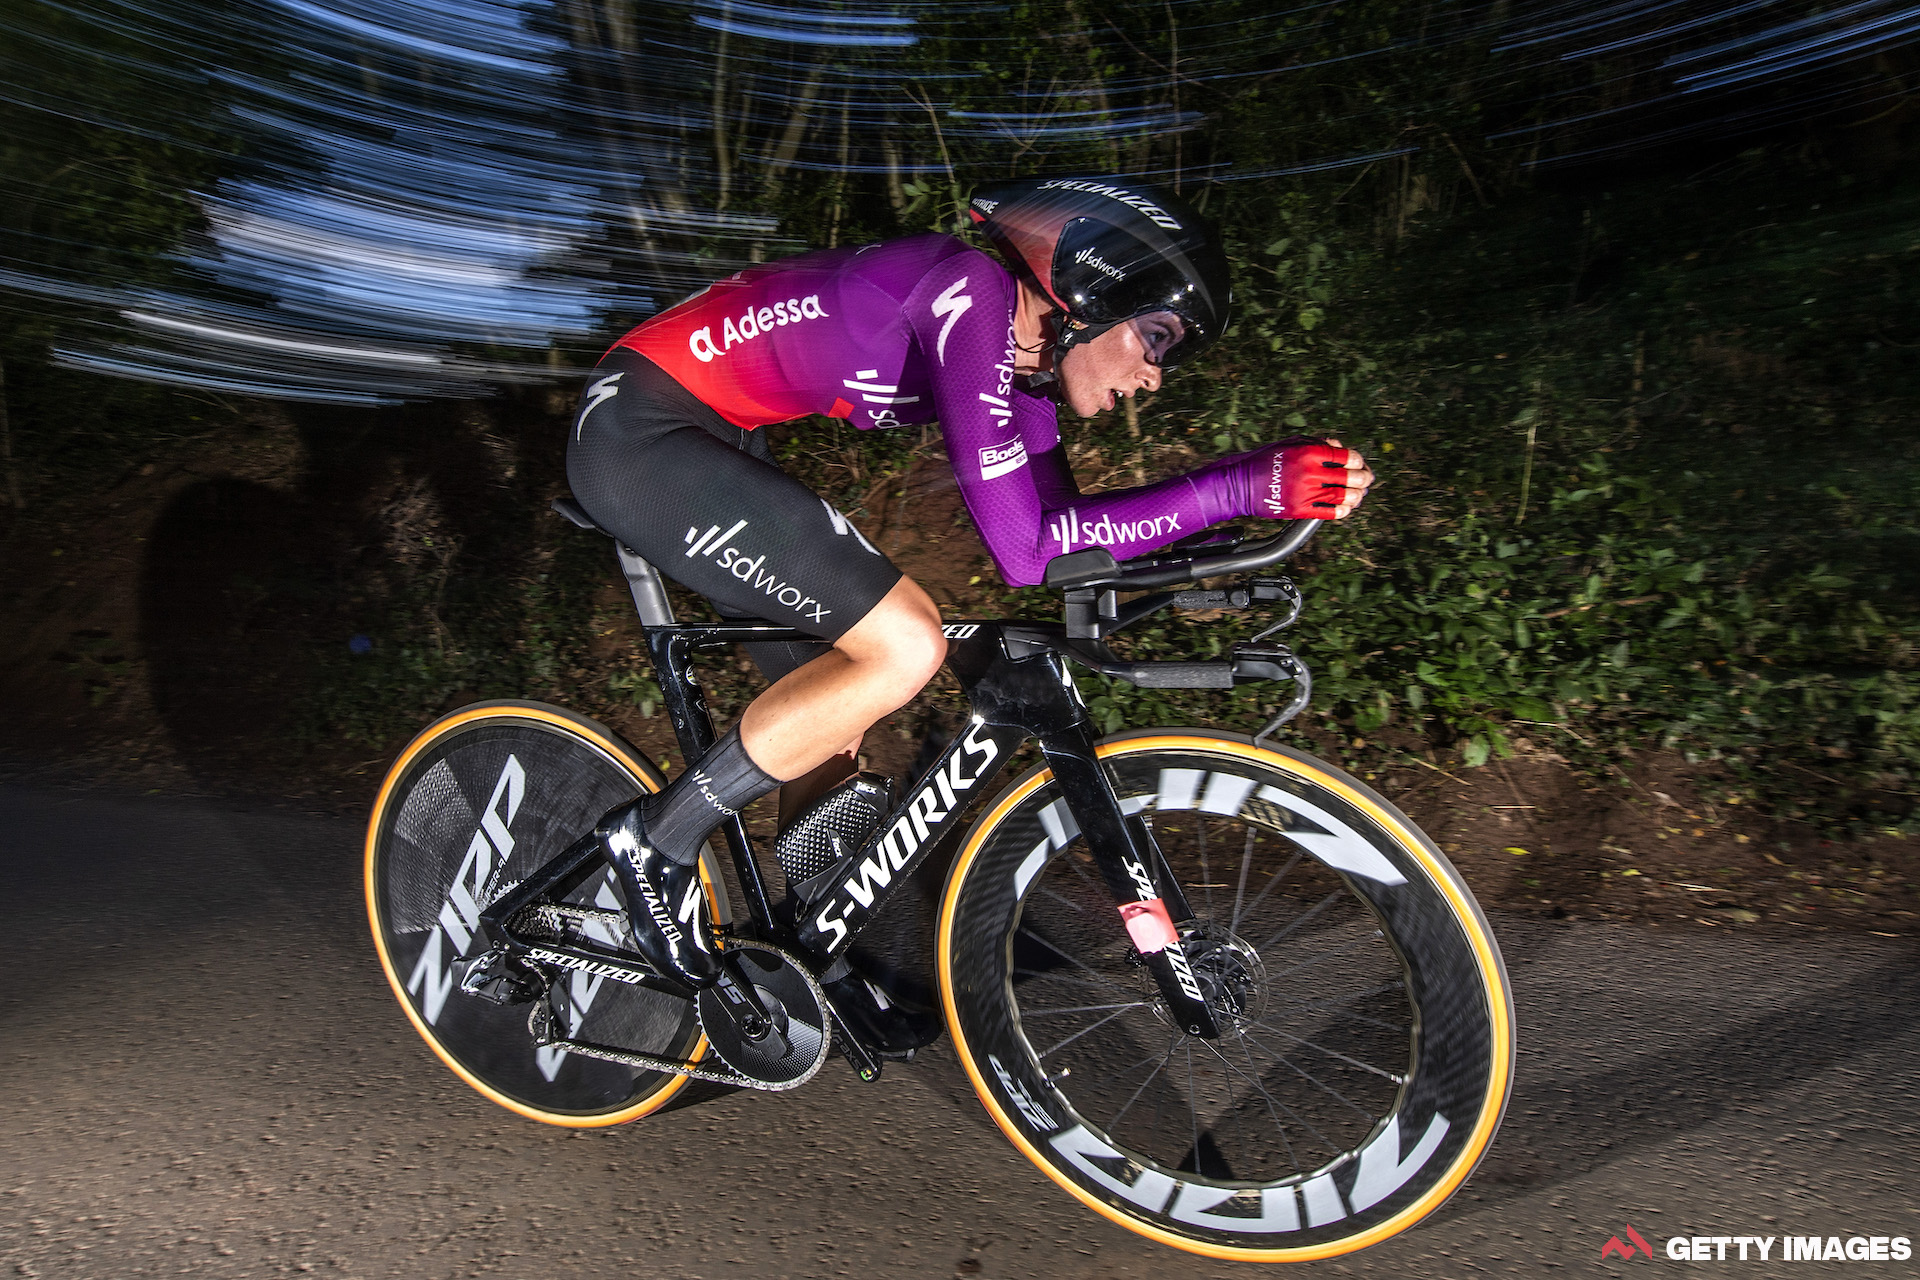 Vollering takes charge of Women's Tour with stage 3 victory